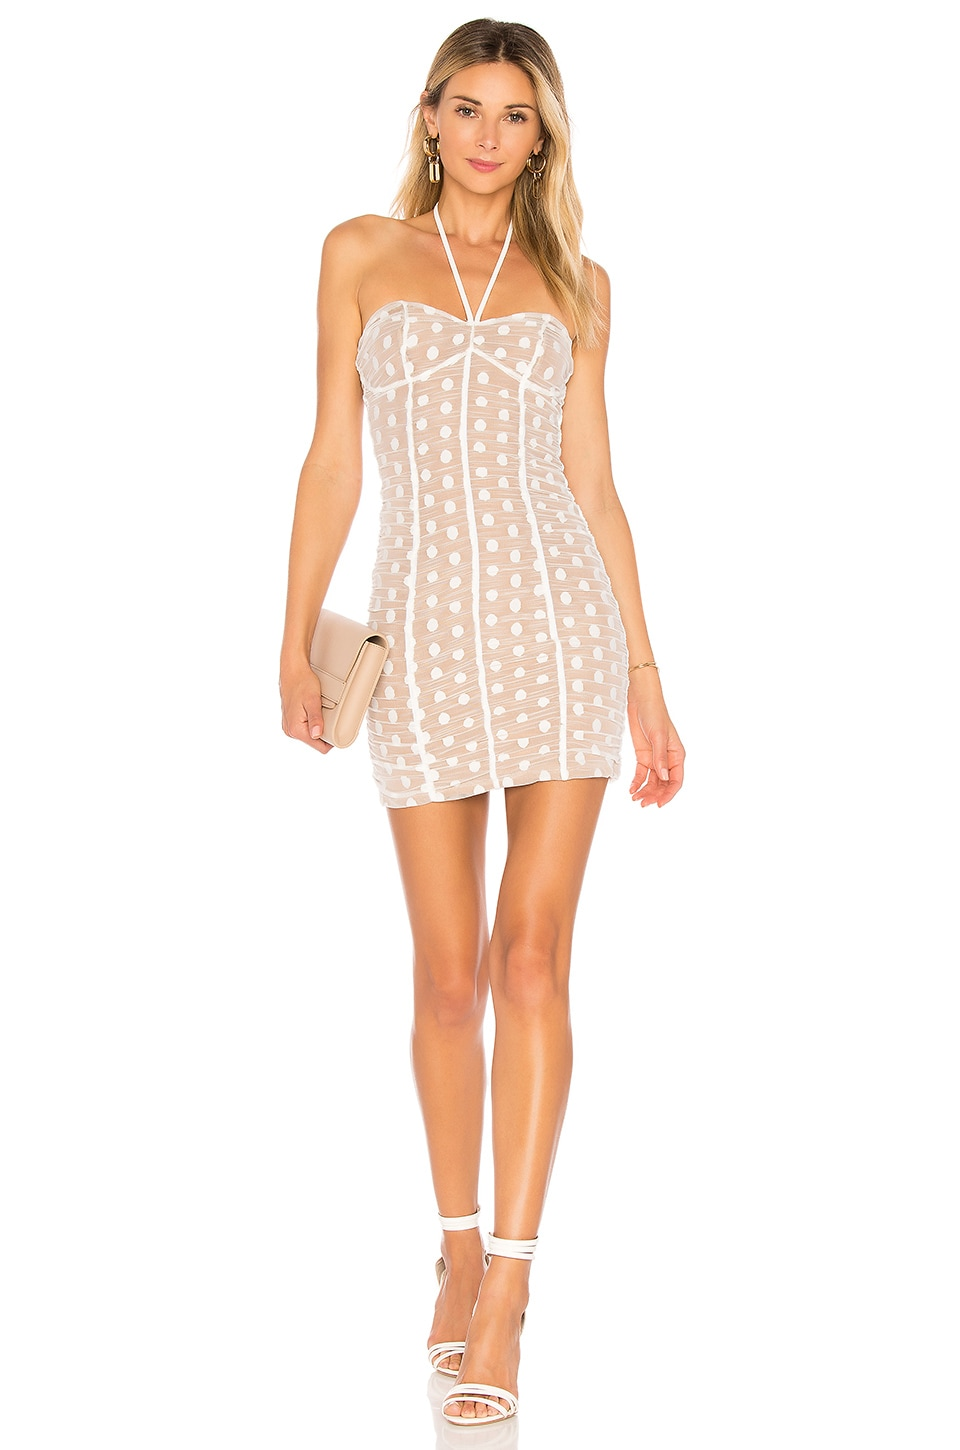 MAJORELLE Clementine Dress in White